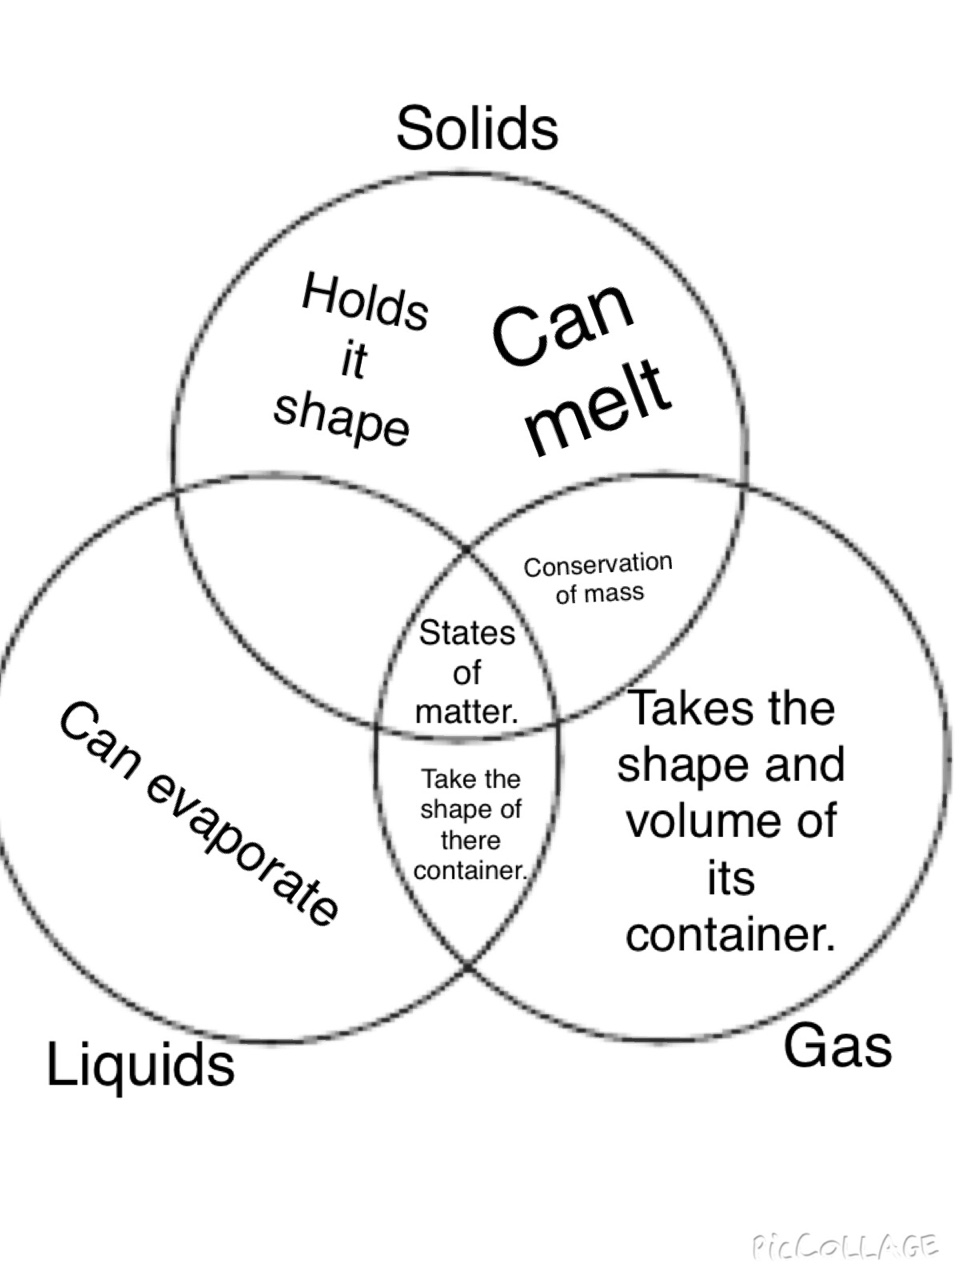 An interactive image thinglink venn diagram of solids liquids and gases s4ingpic pooptronica Gallery